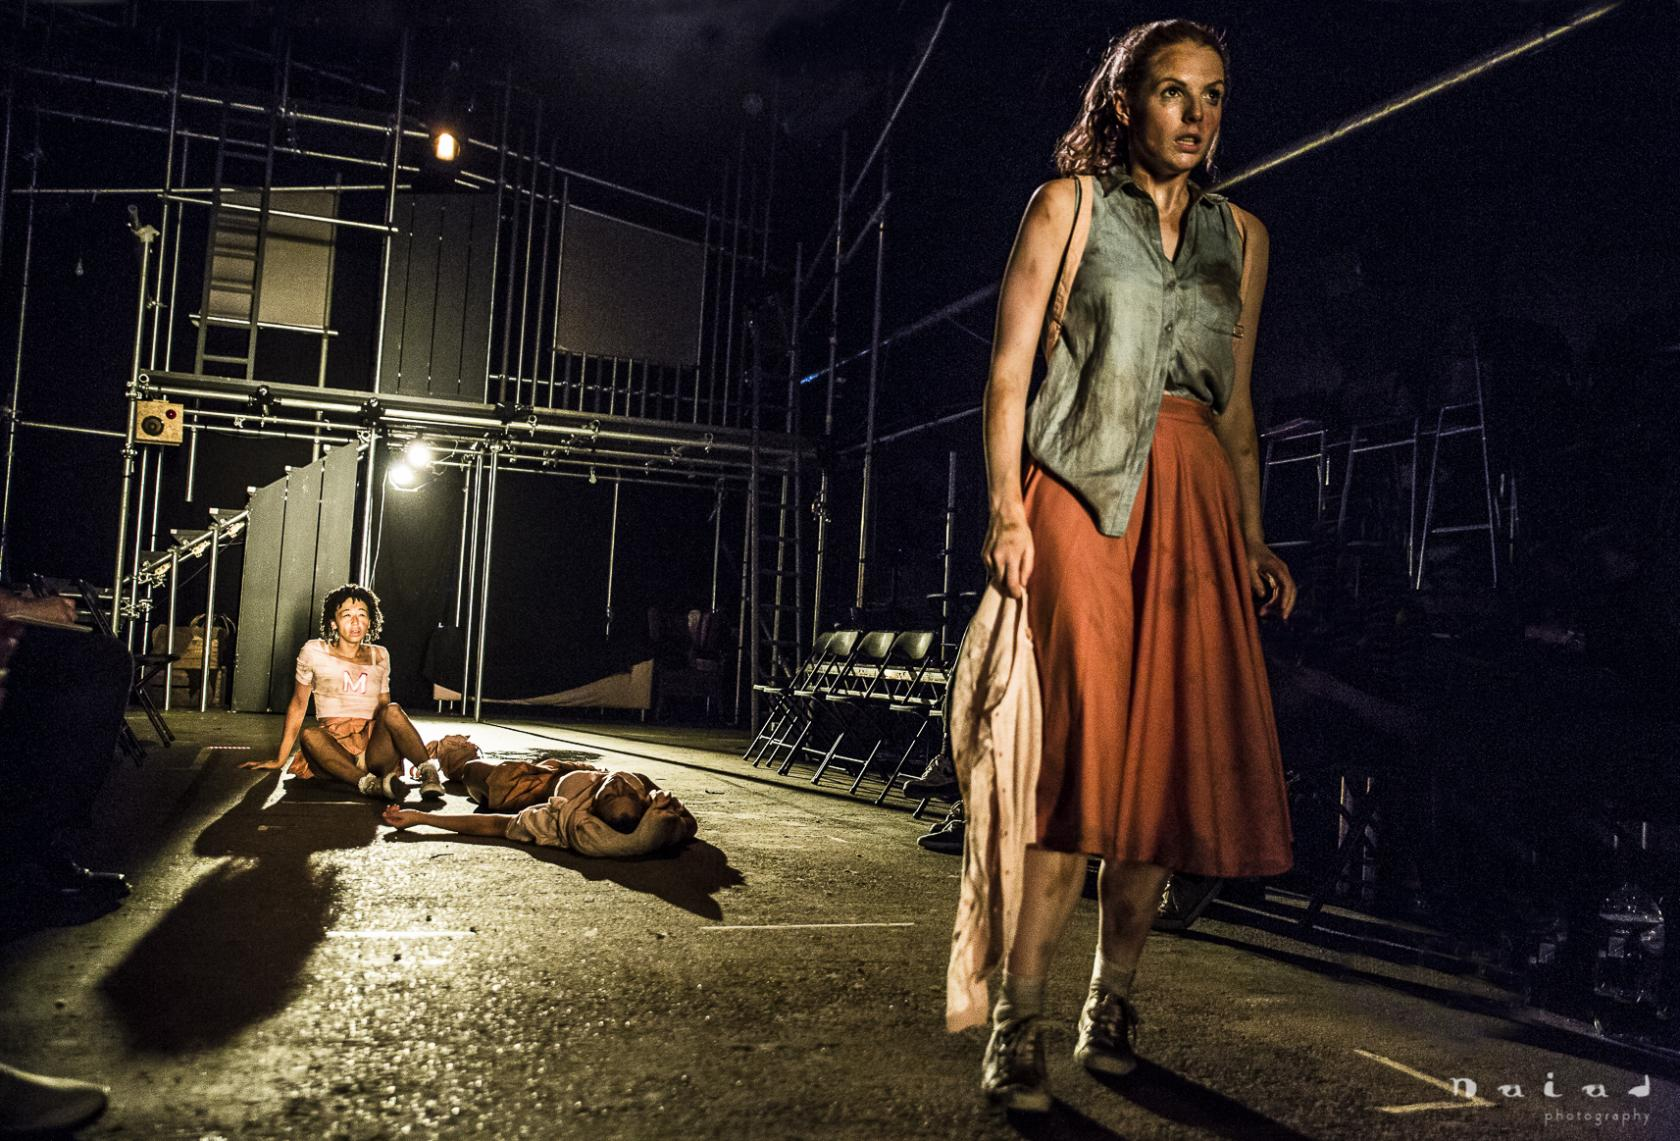 Immersive theatre spaces in London